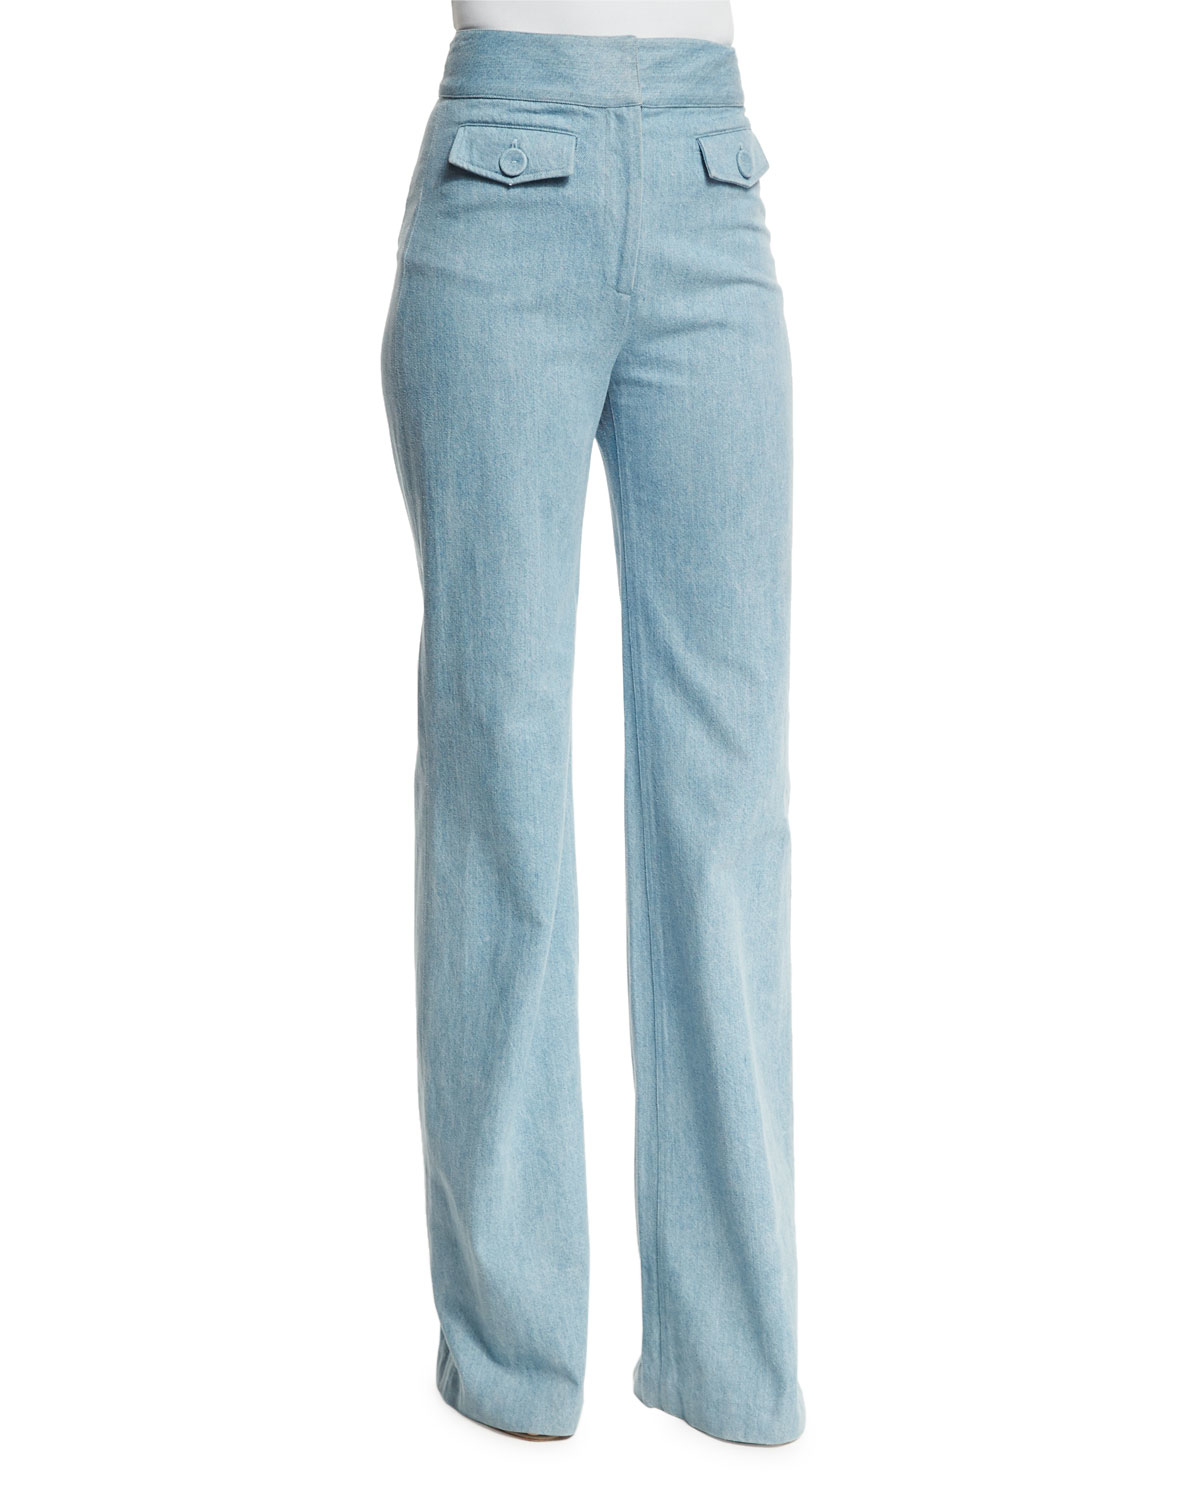 Adam lippes High-waist Boot-cut Jeans in Blue | Lyst